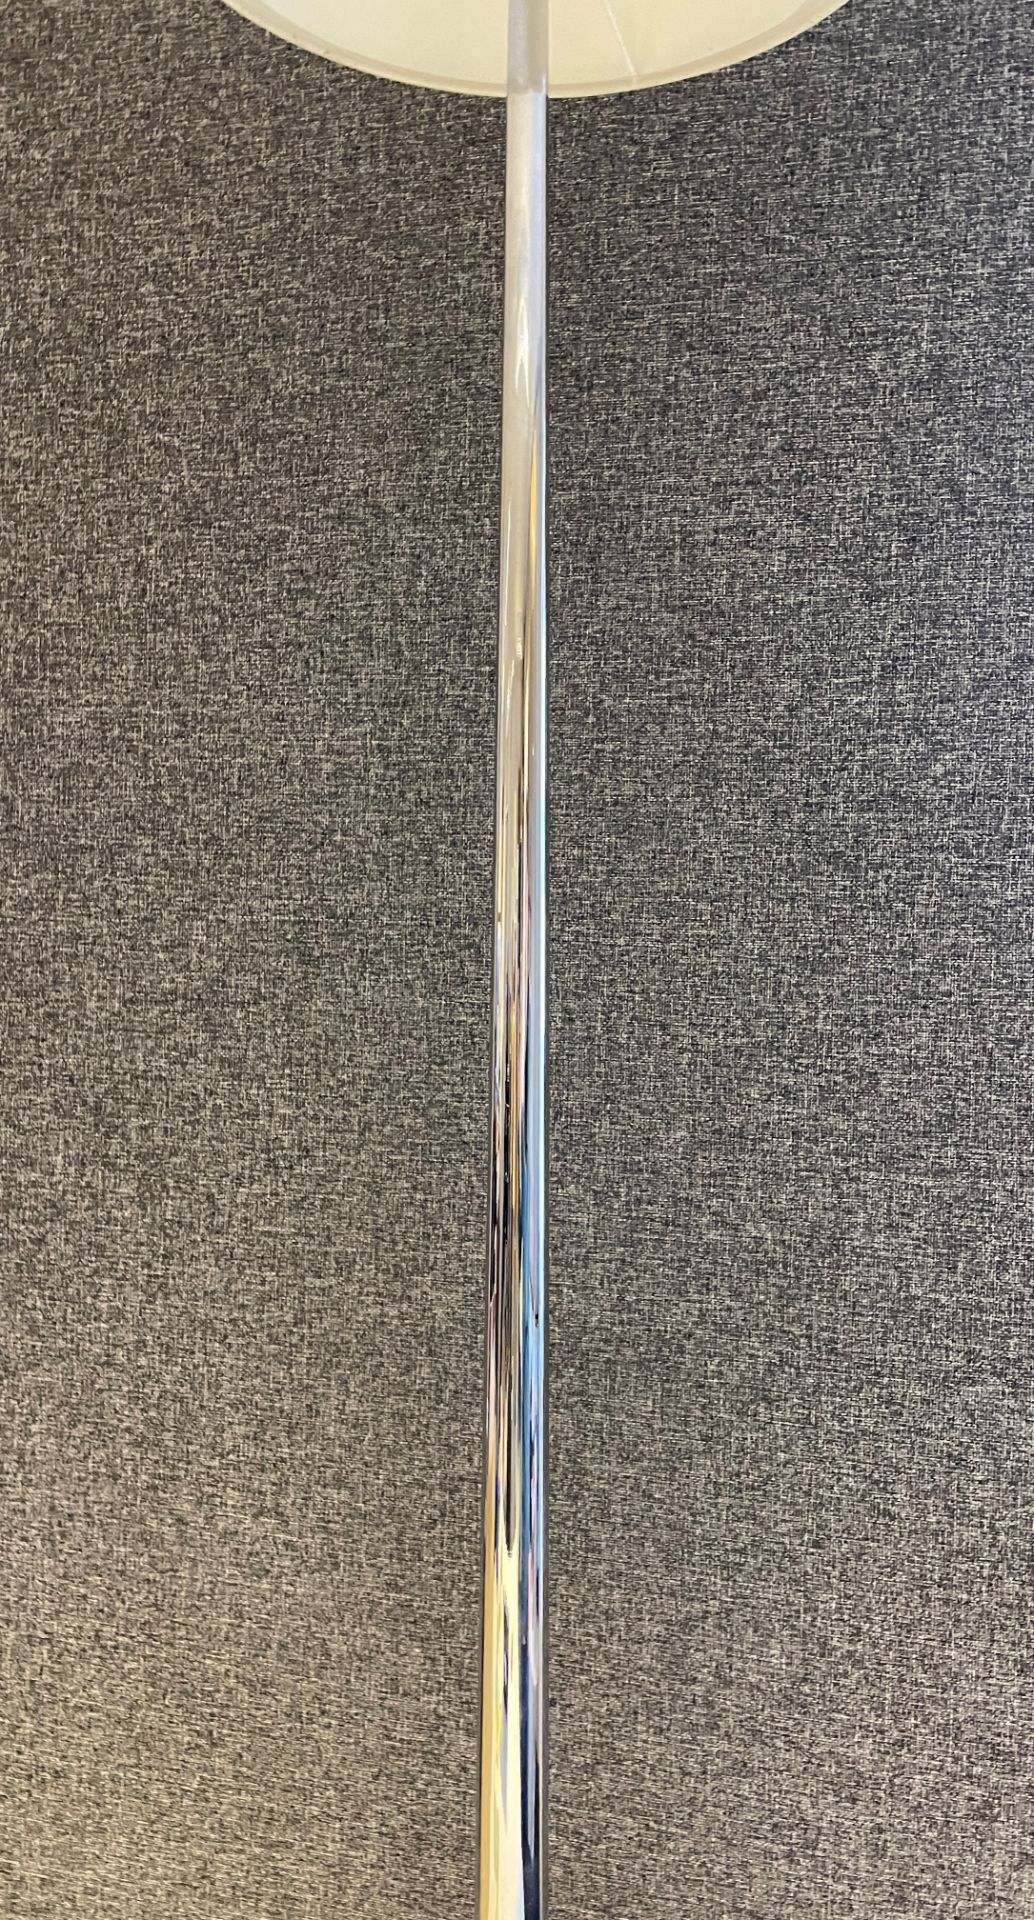 1 x Chelsom Polished Chrome Stem Floor Lamp height 155cm with Cream 31cm round shade - Ref: CHL198 - Image 10 of 10